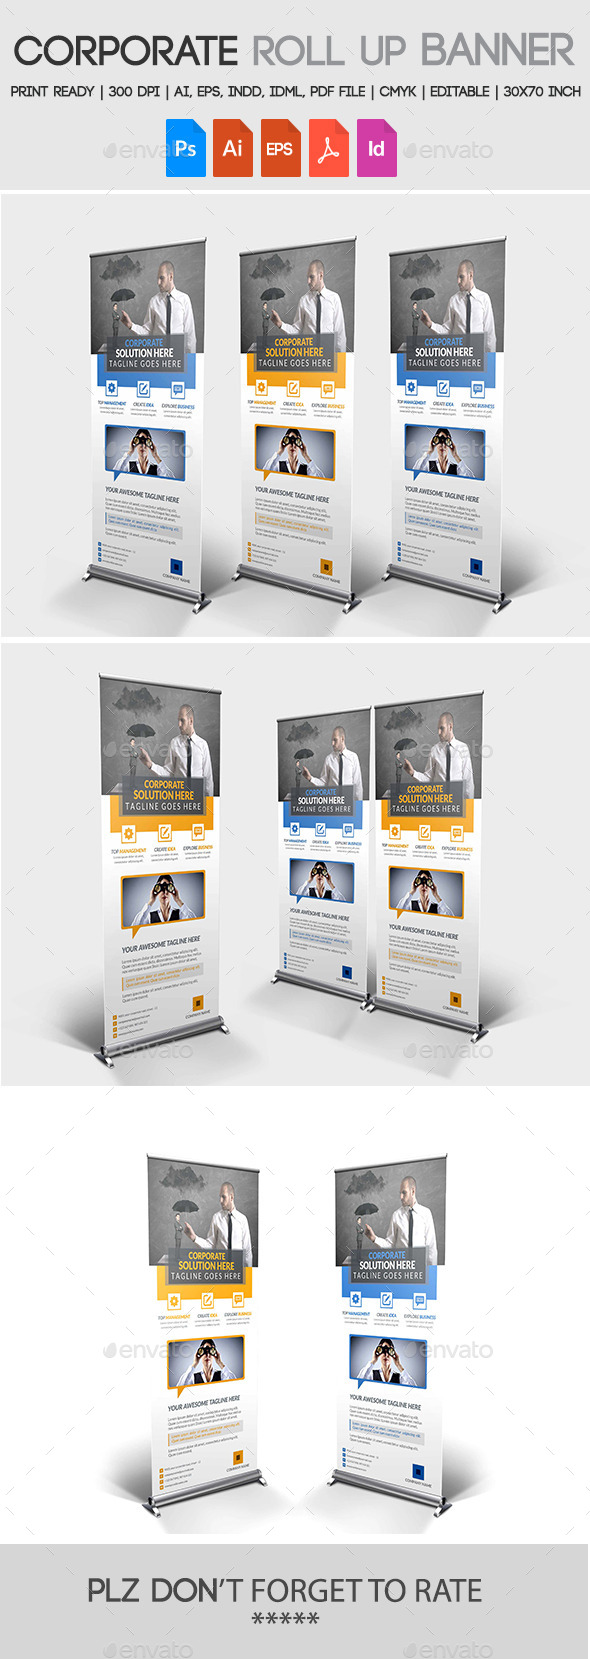 GraphicRiver Corporate Roll up Banner 11274463